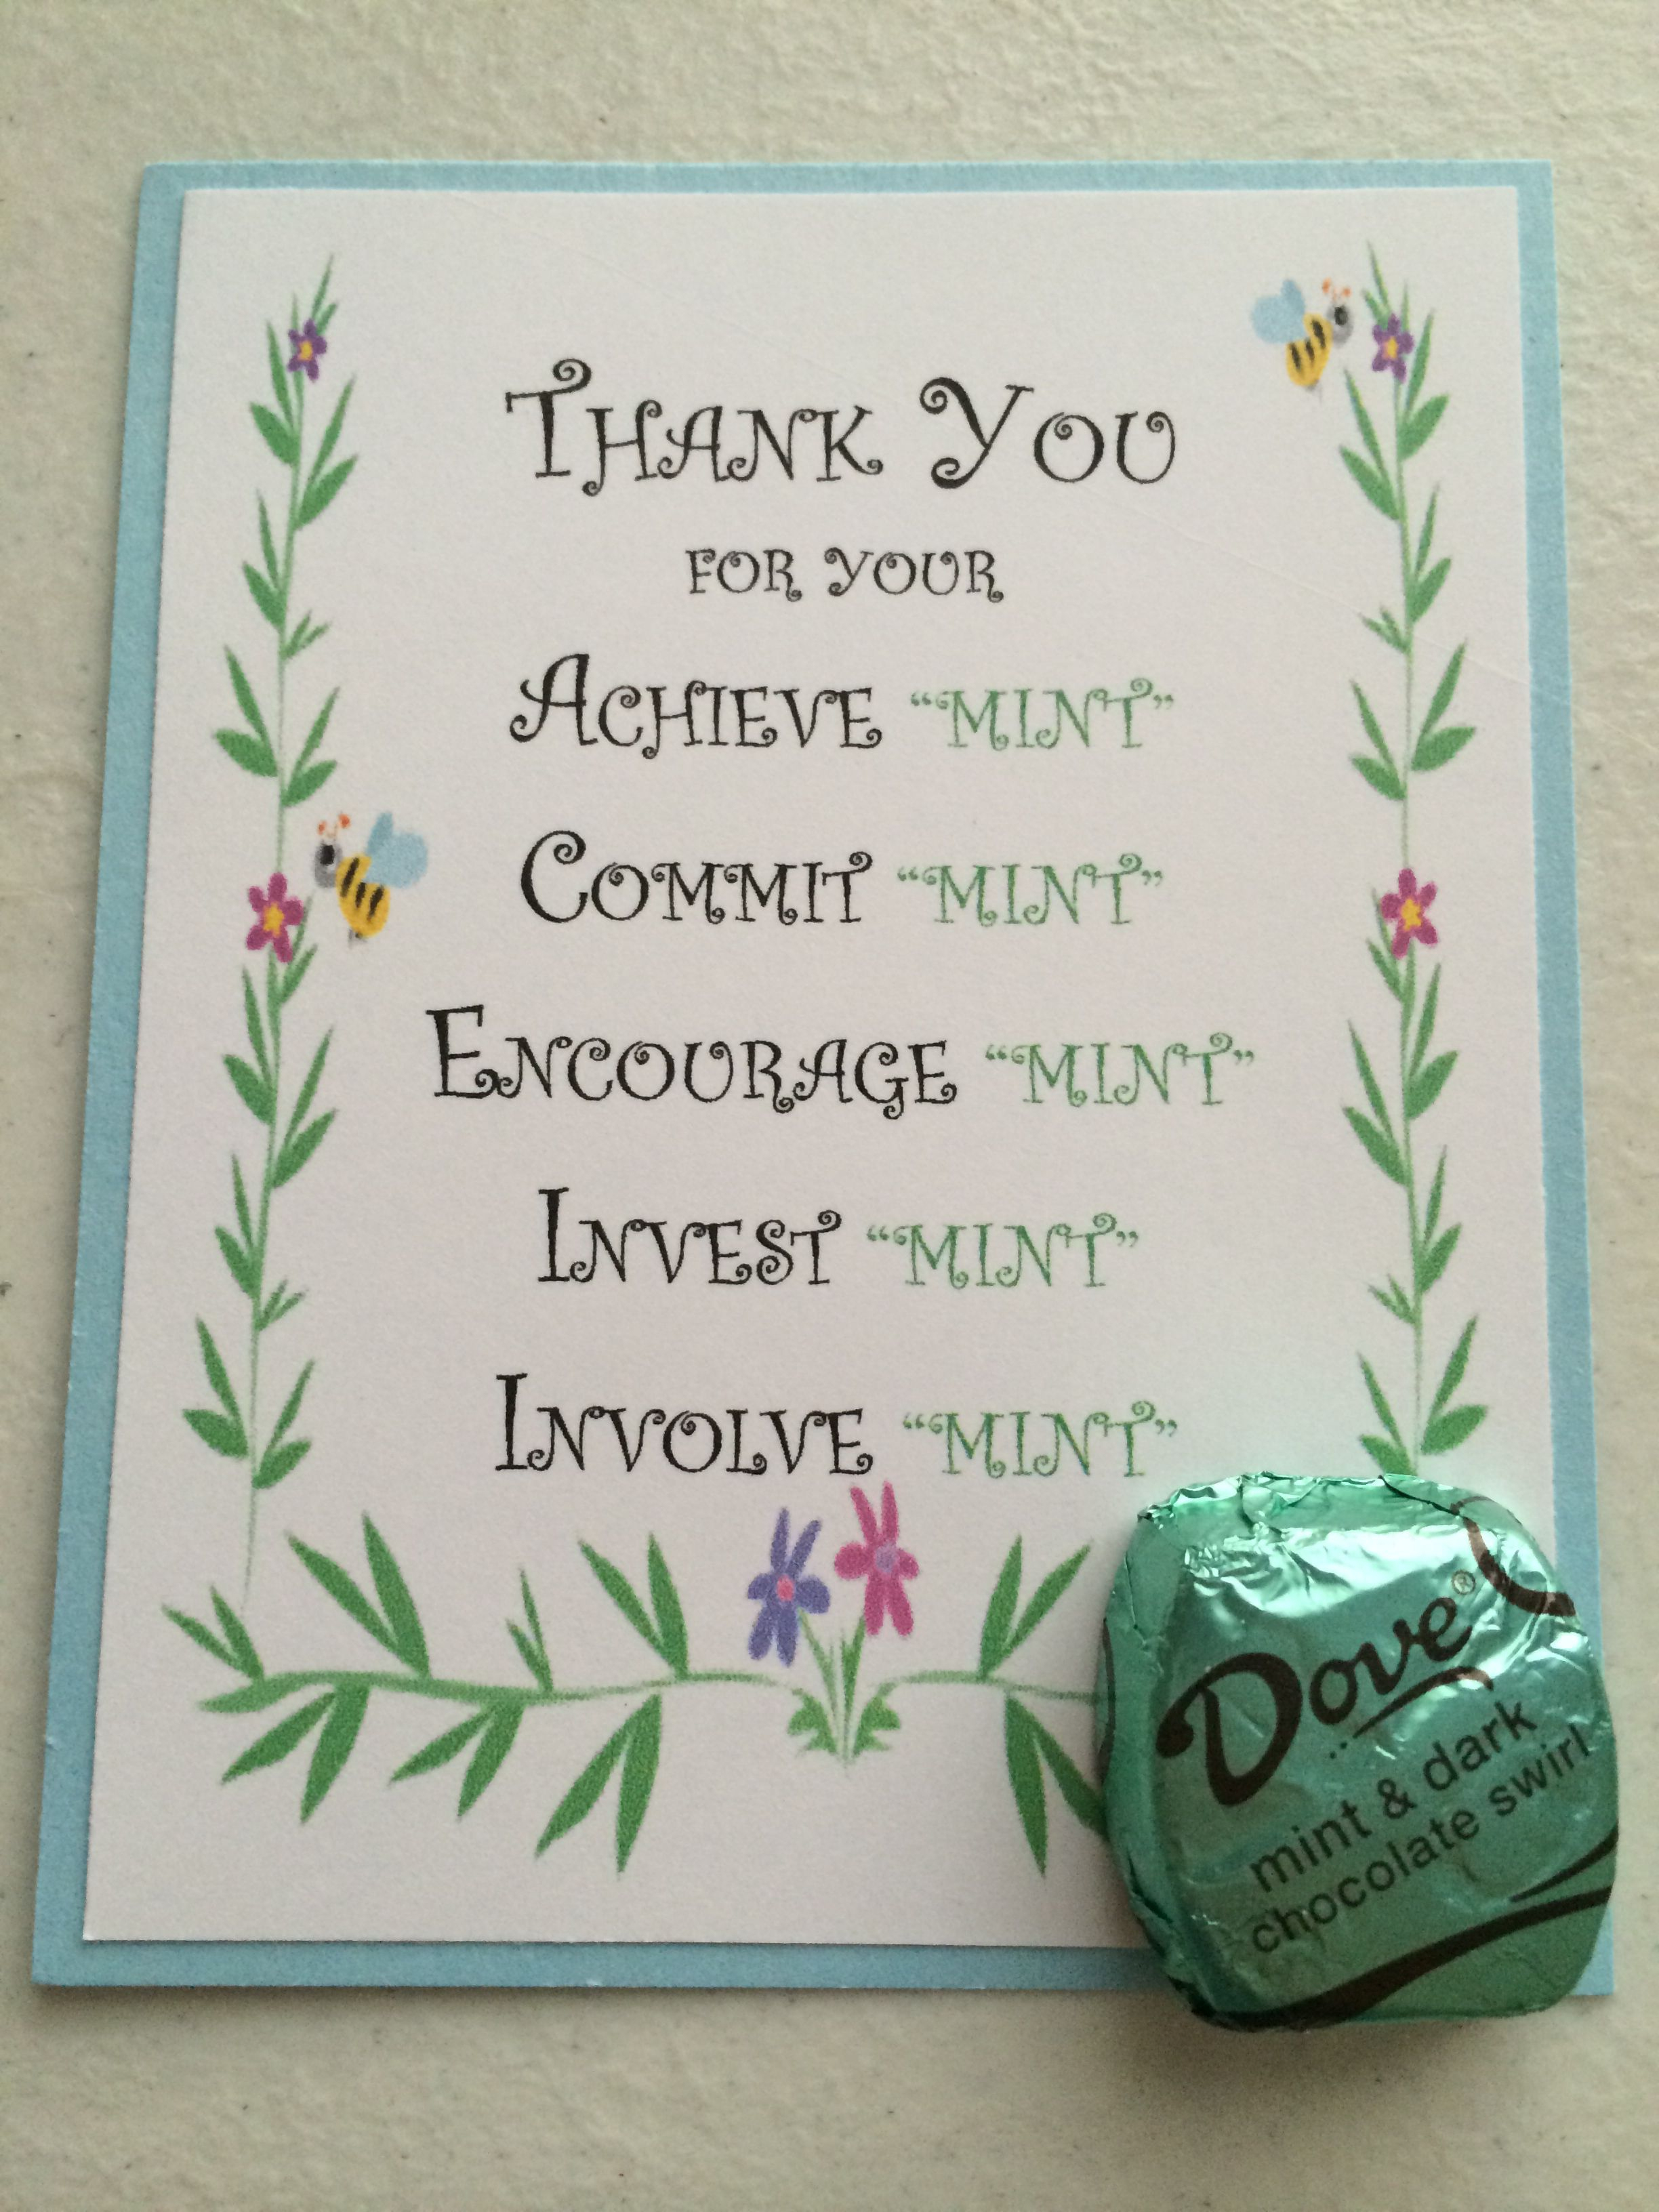 Volunteer Thank You Card | Cards | Pinterest | Volunteer - Free Printable Volunteer Thank You Cards